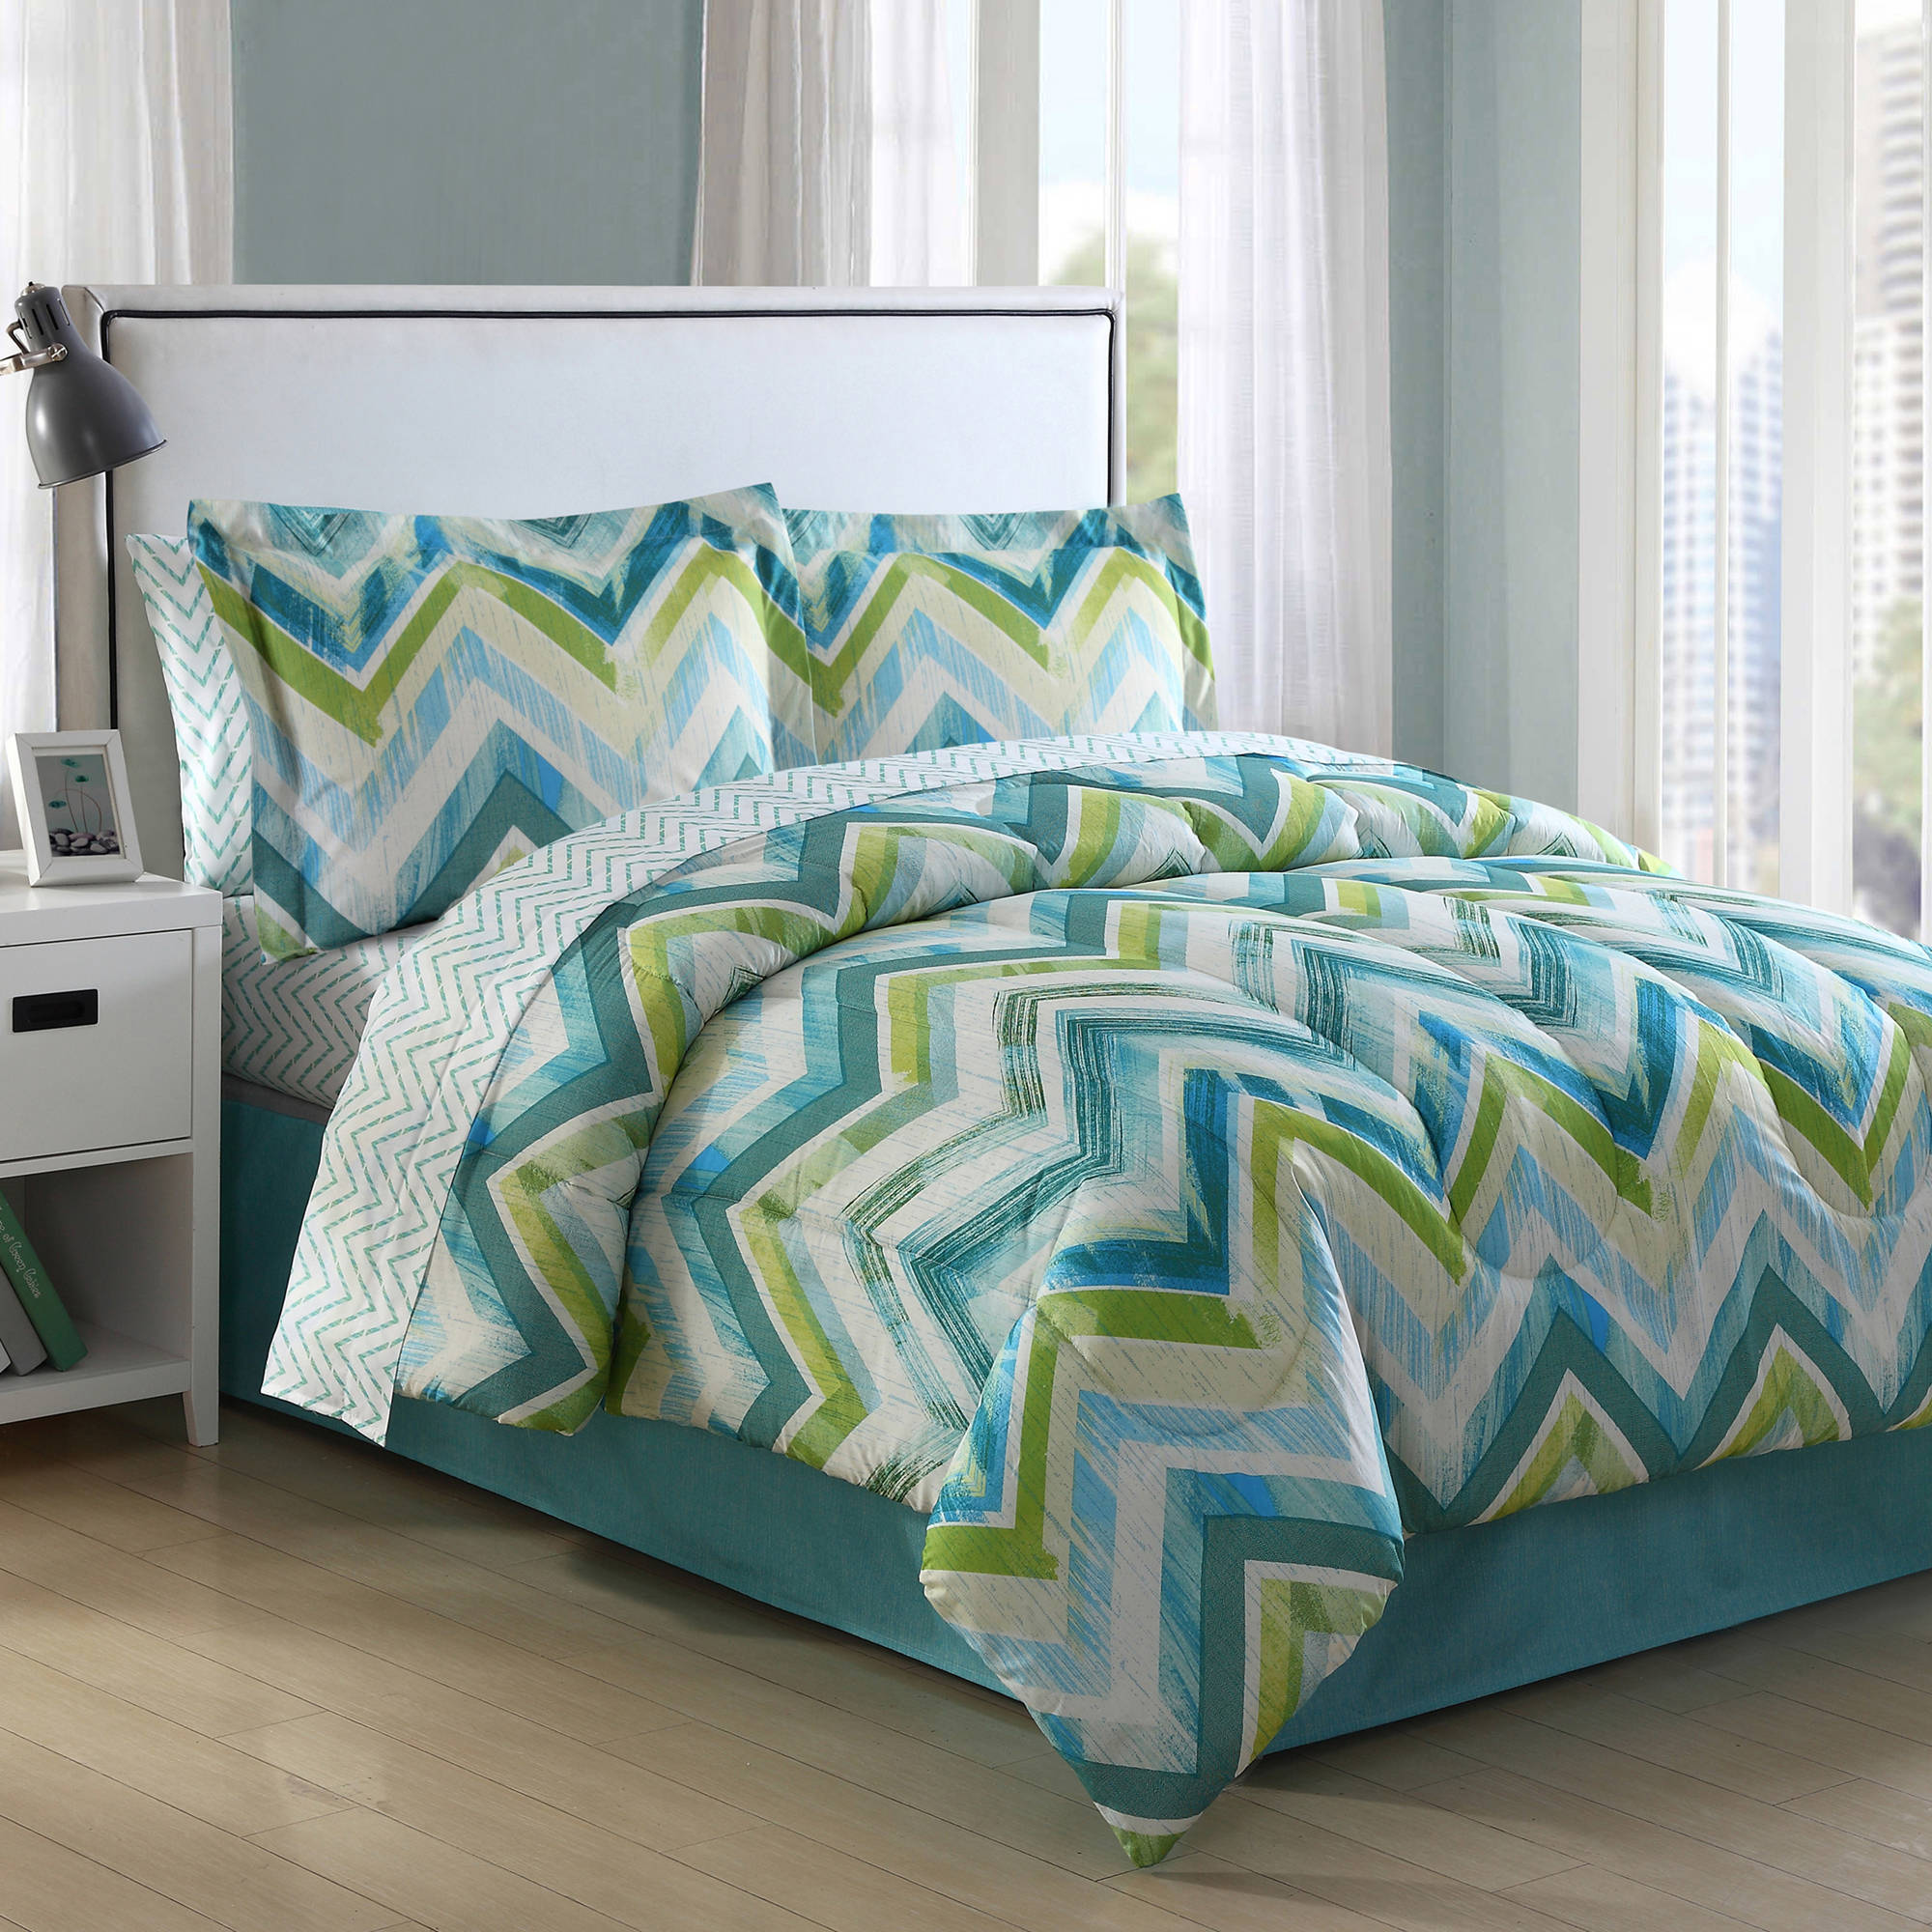 Conner Chevron Bed in a Bag